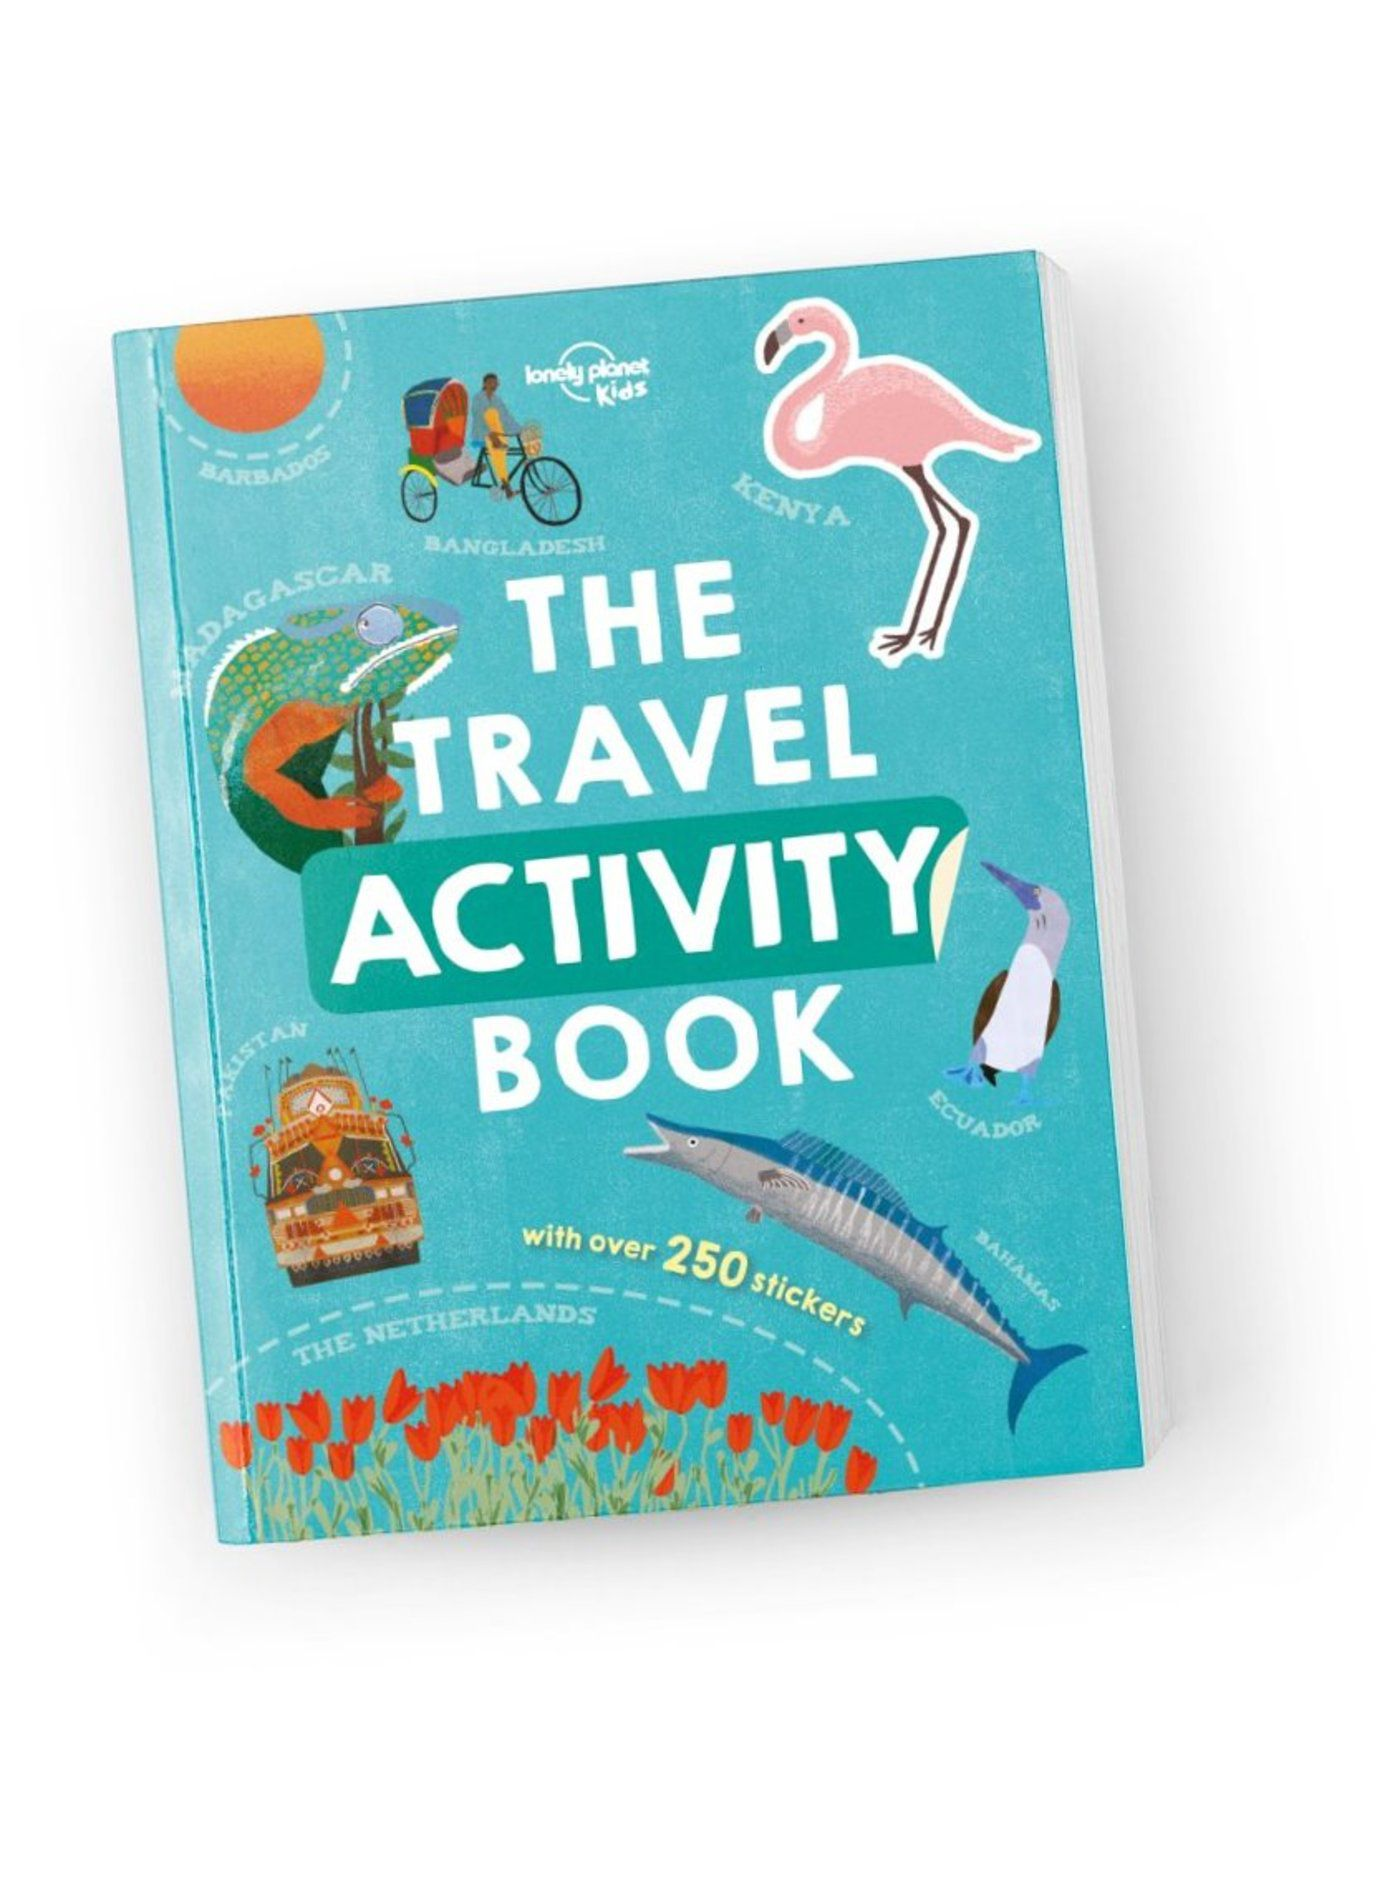 The Travel Activity Book (North & South America edition)